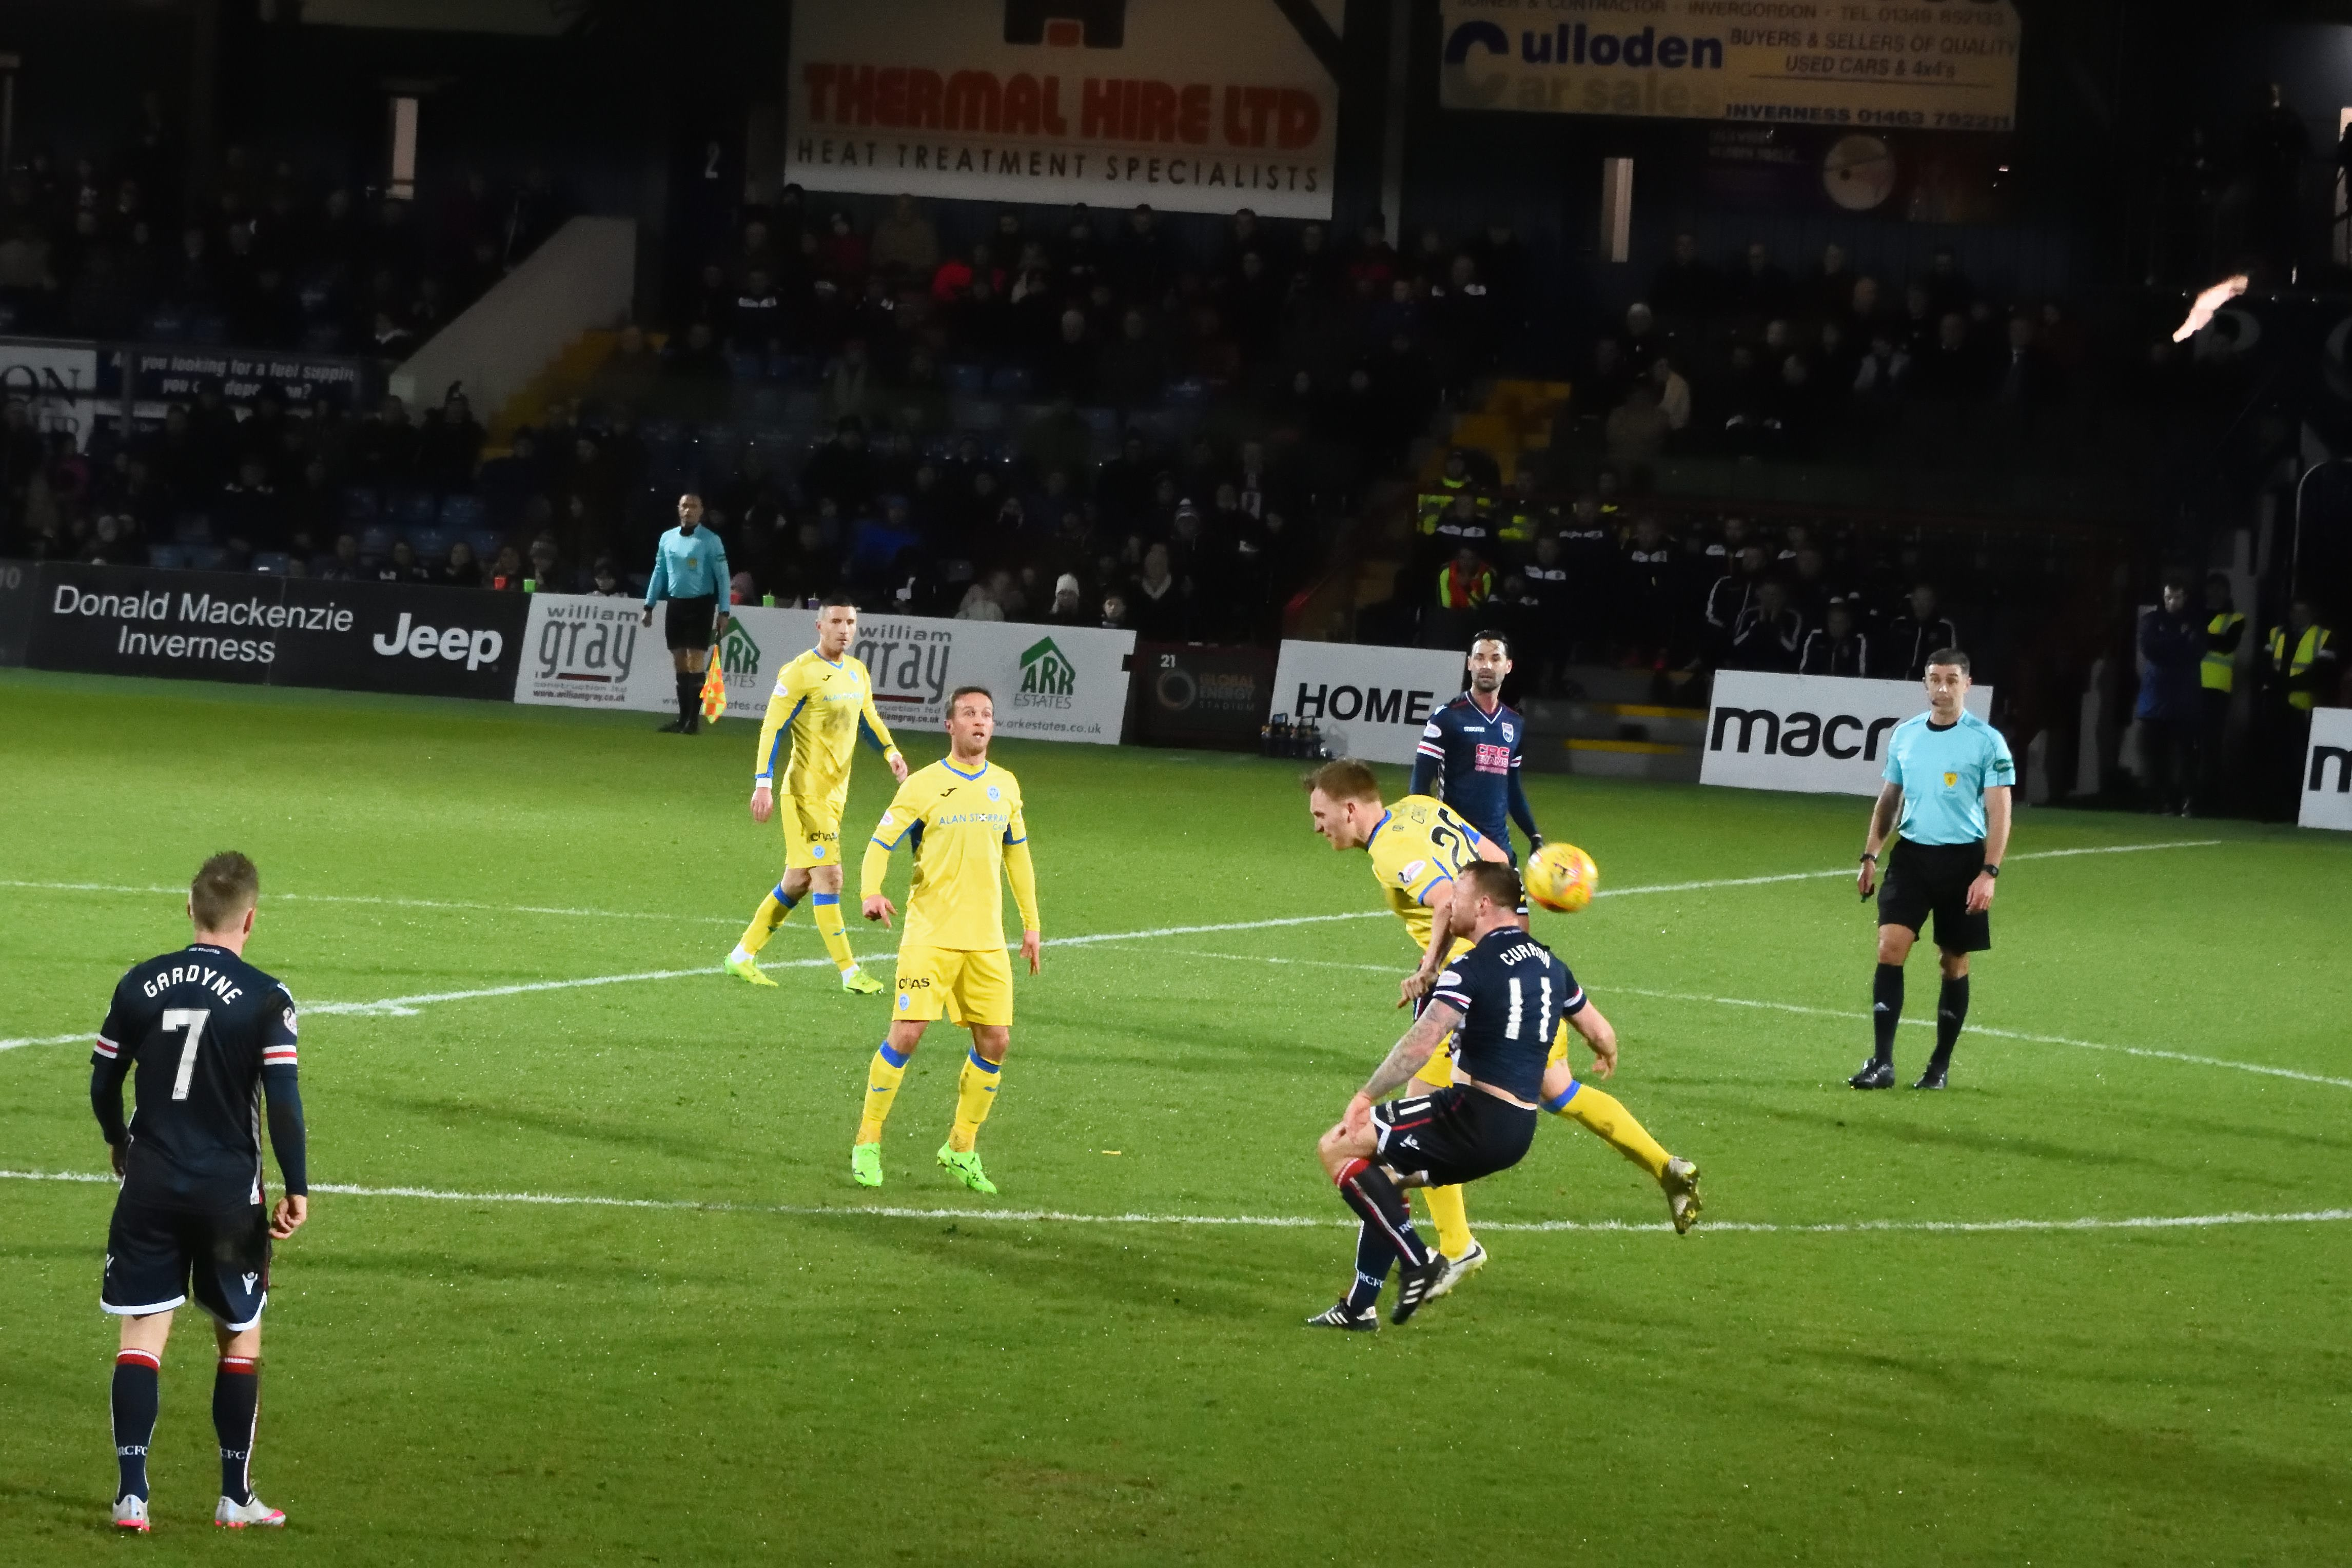 Football Nation 32/55 - Scotland - Ross County 1-1 St Johnstone